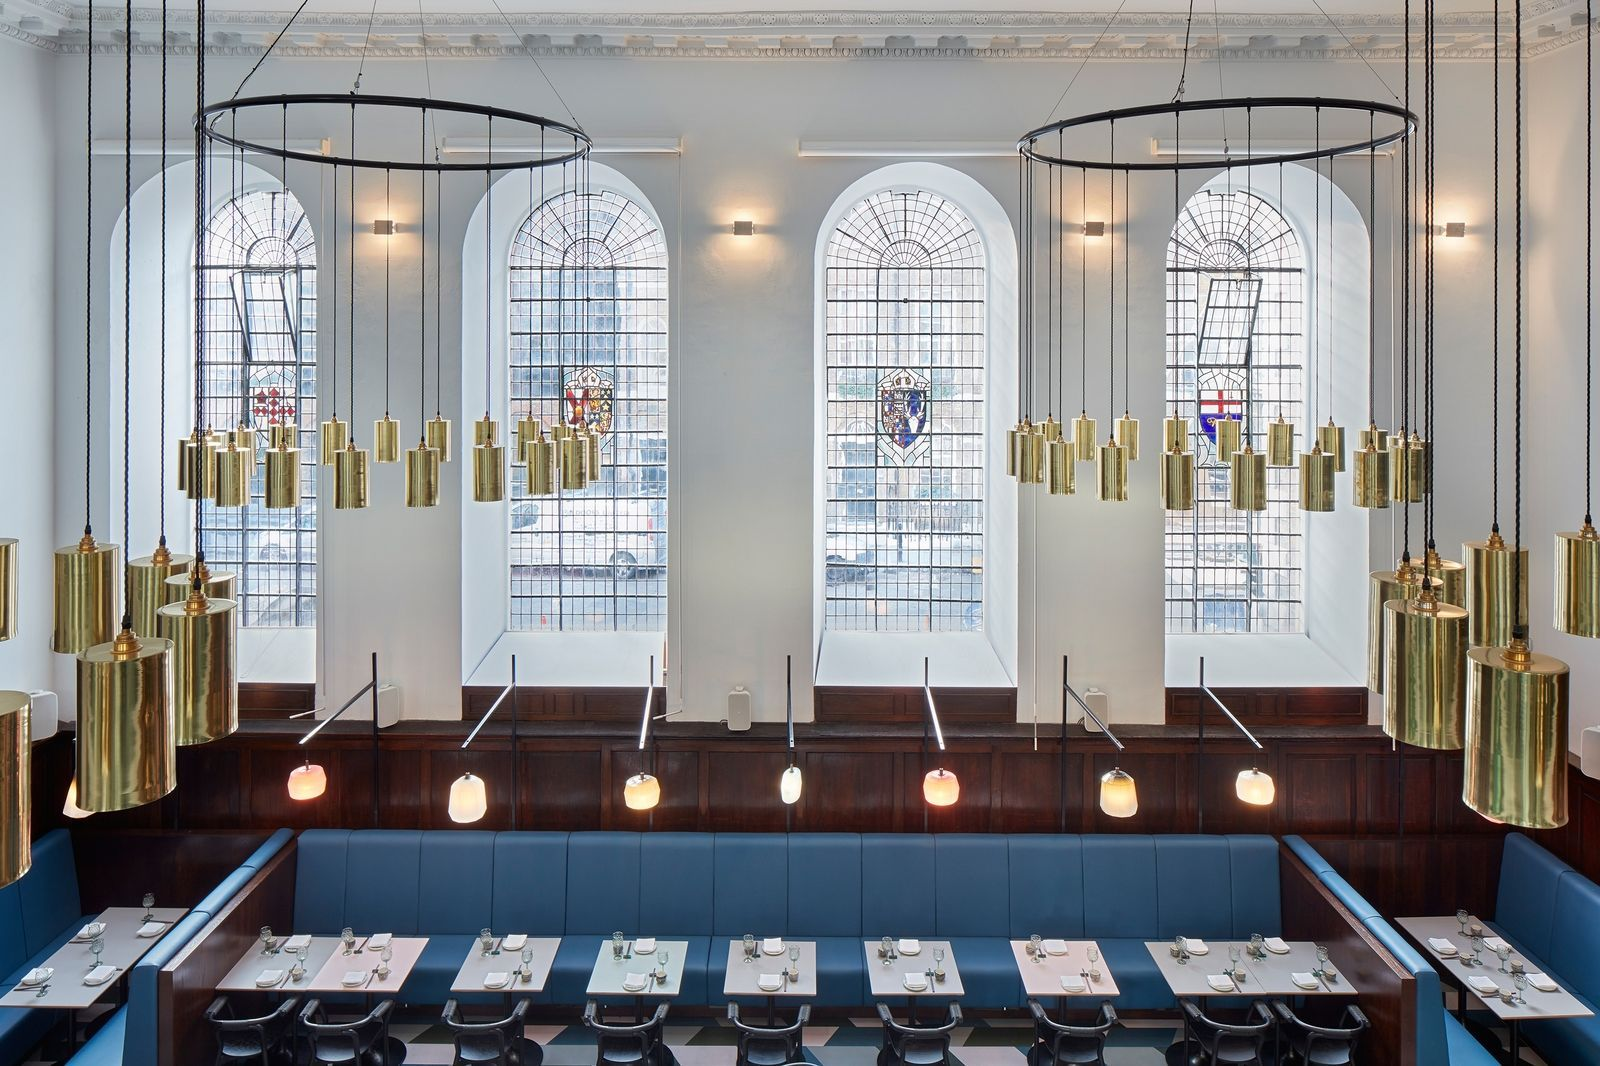 Hong Kong S Most Fashionable Restaurant Finds A New Home In An Old London Church Interior Design London London Picture Gallery Hospitality Design